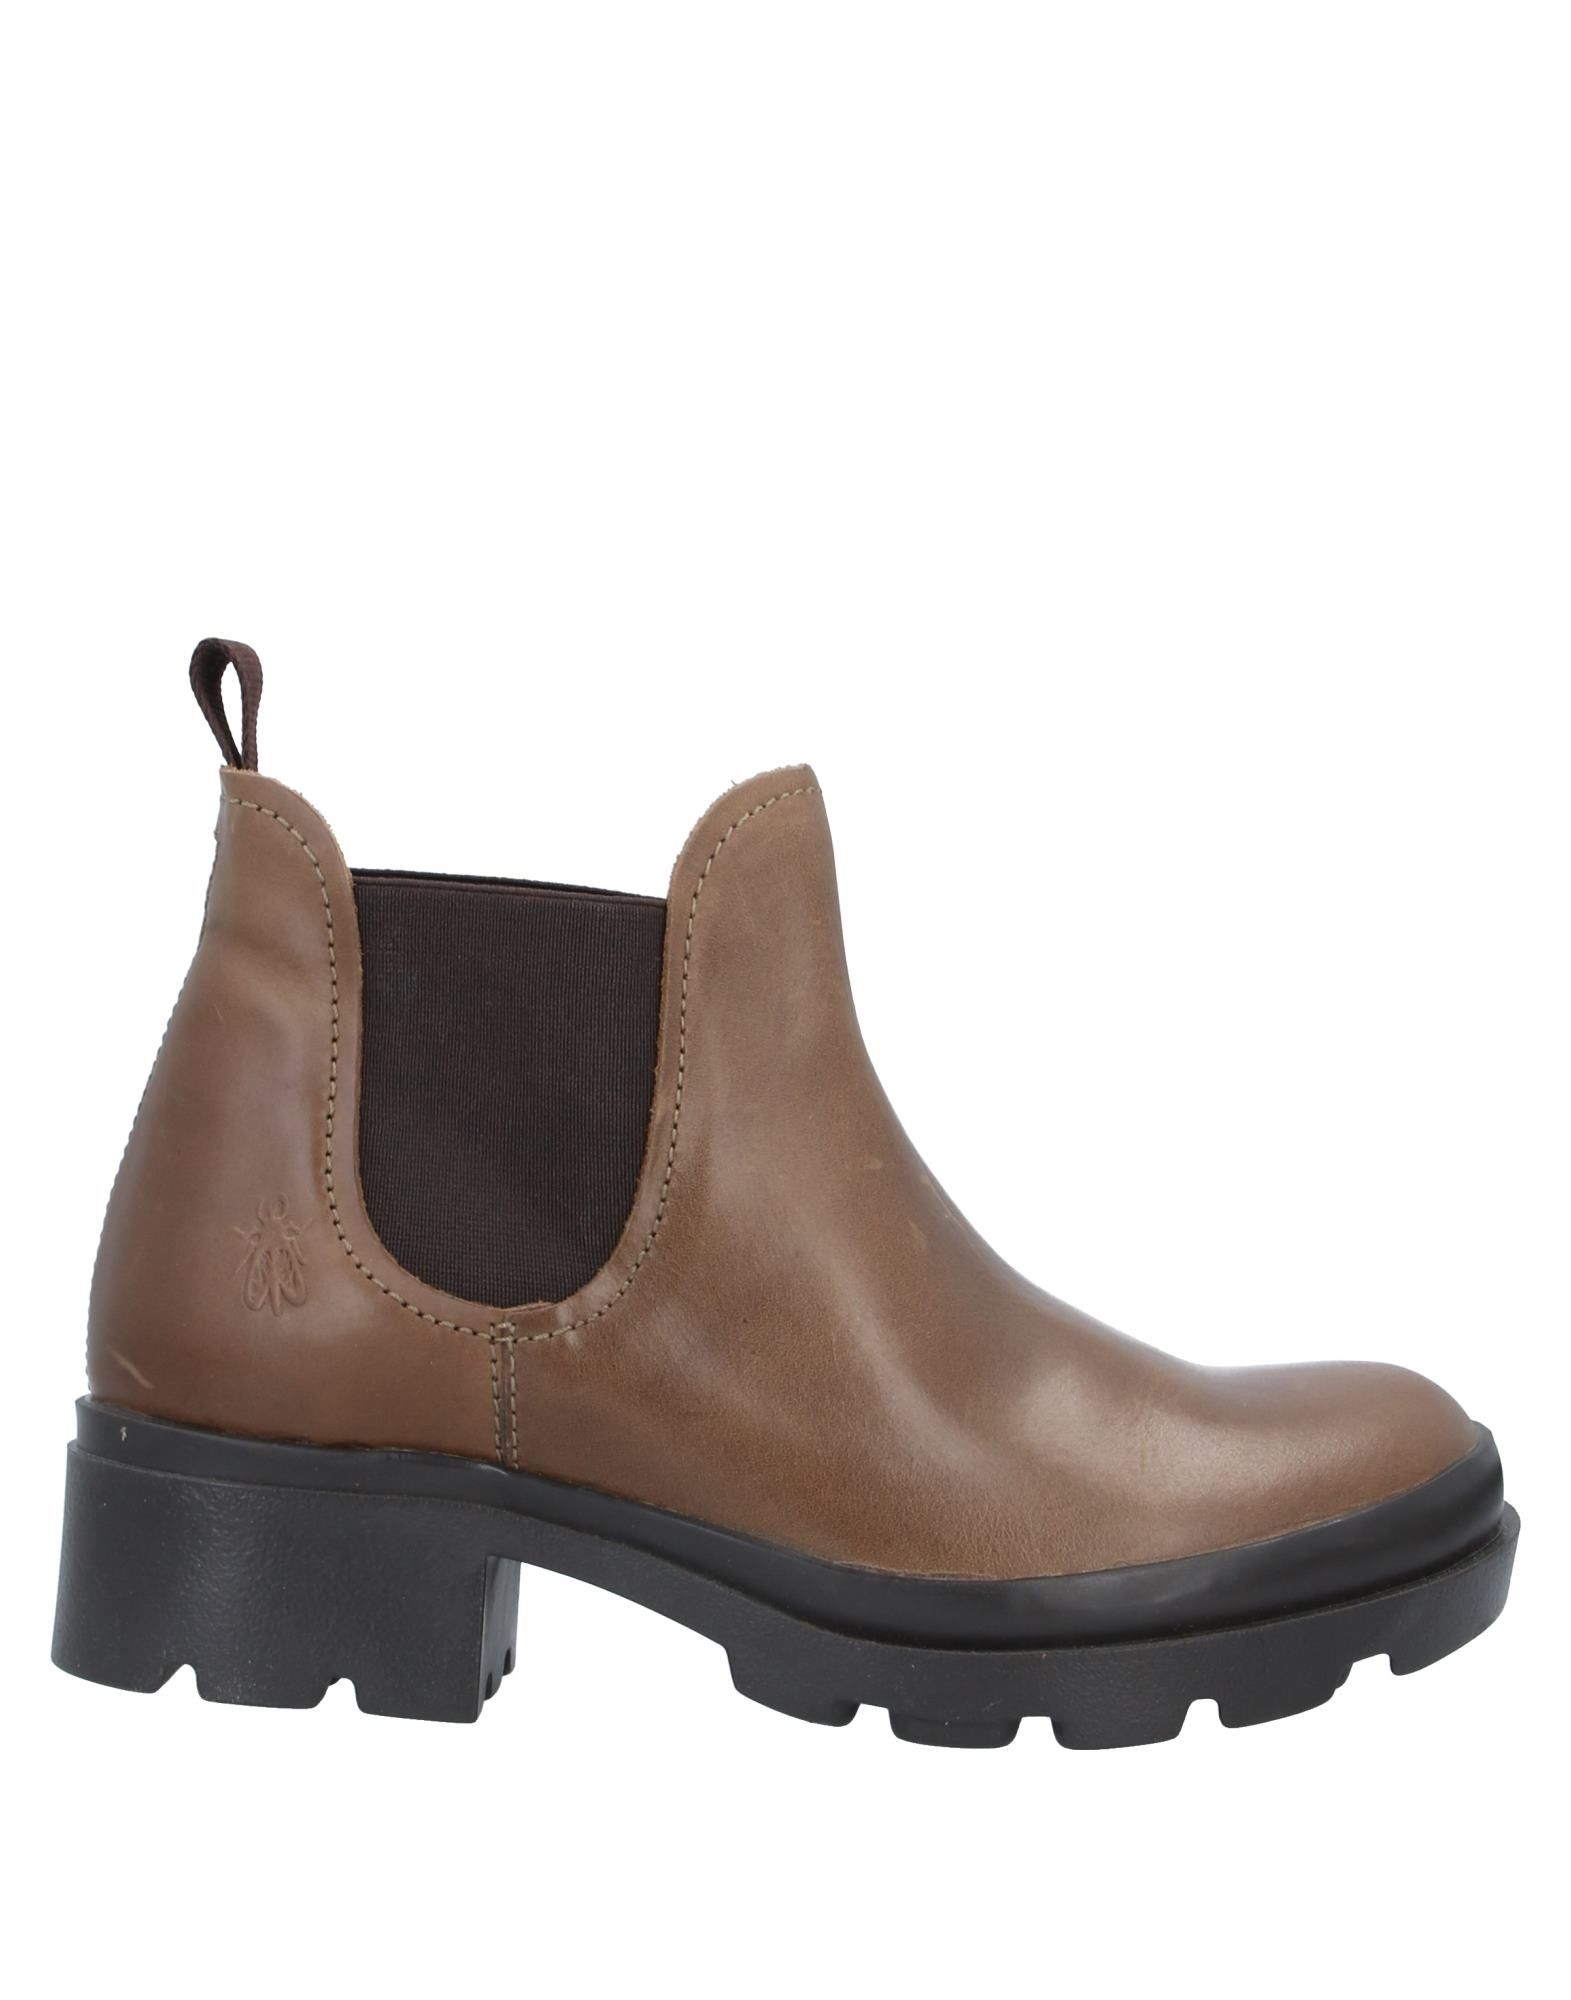 FLY LONDON Ankle boots. leather, no appliqués, solid color, elasticized gores, round toeline, square heel, fabric inner, rubber sole, contains non-textile parts of animal origin. Soft Leather